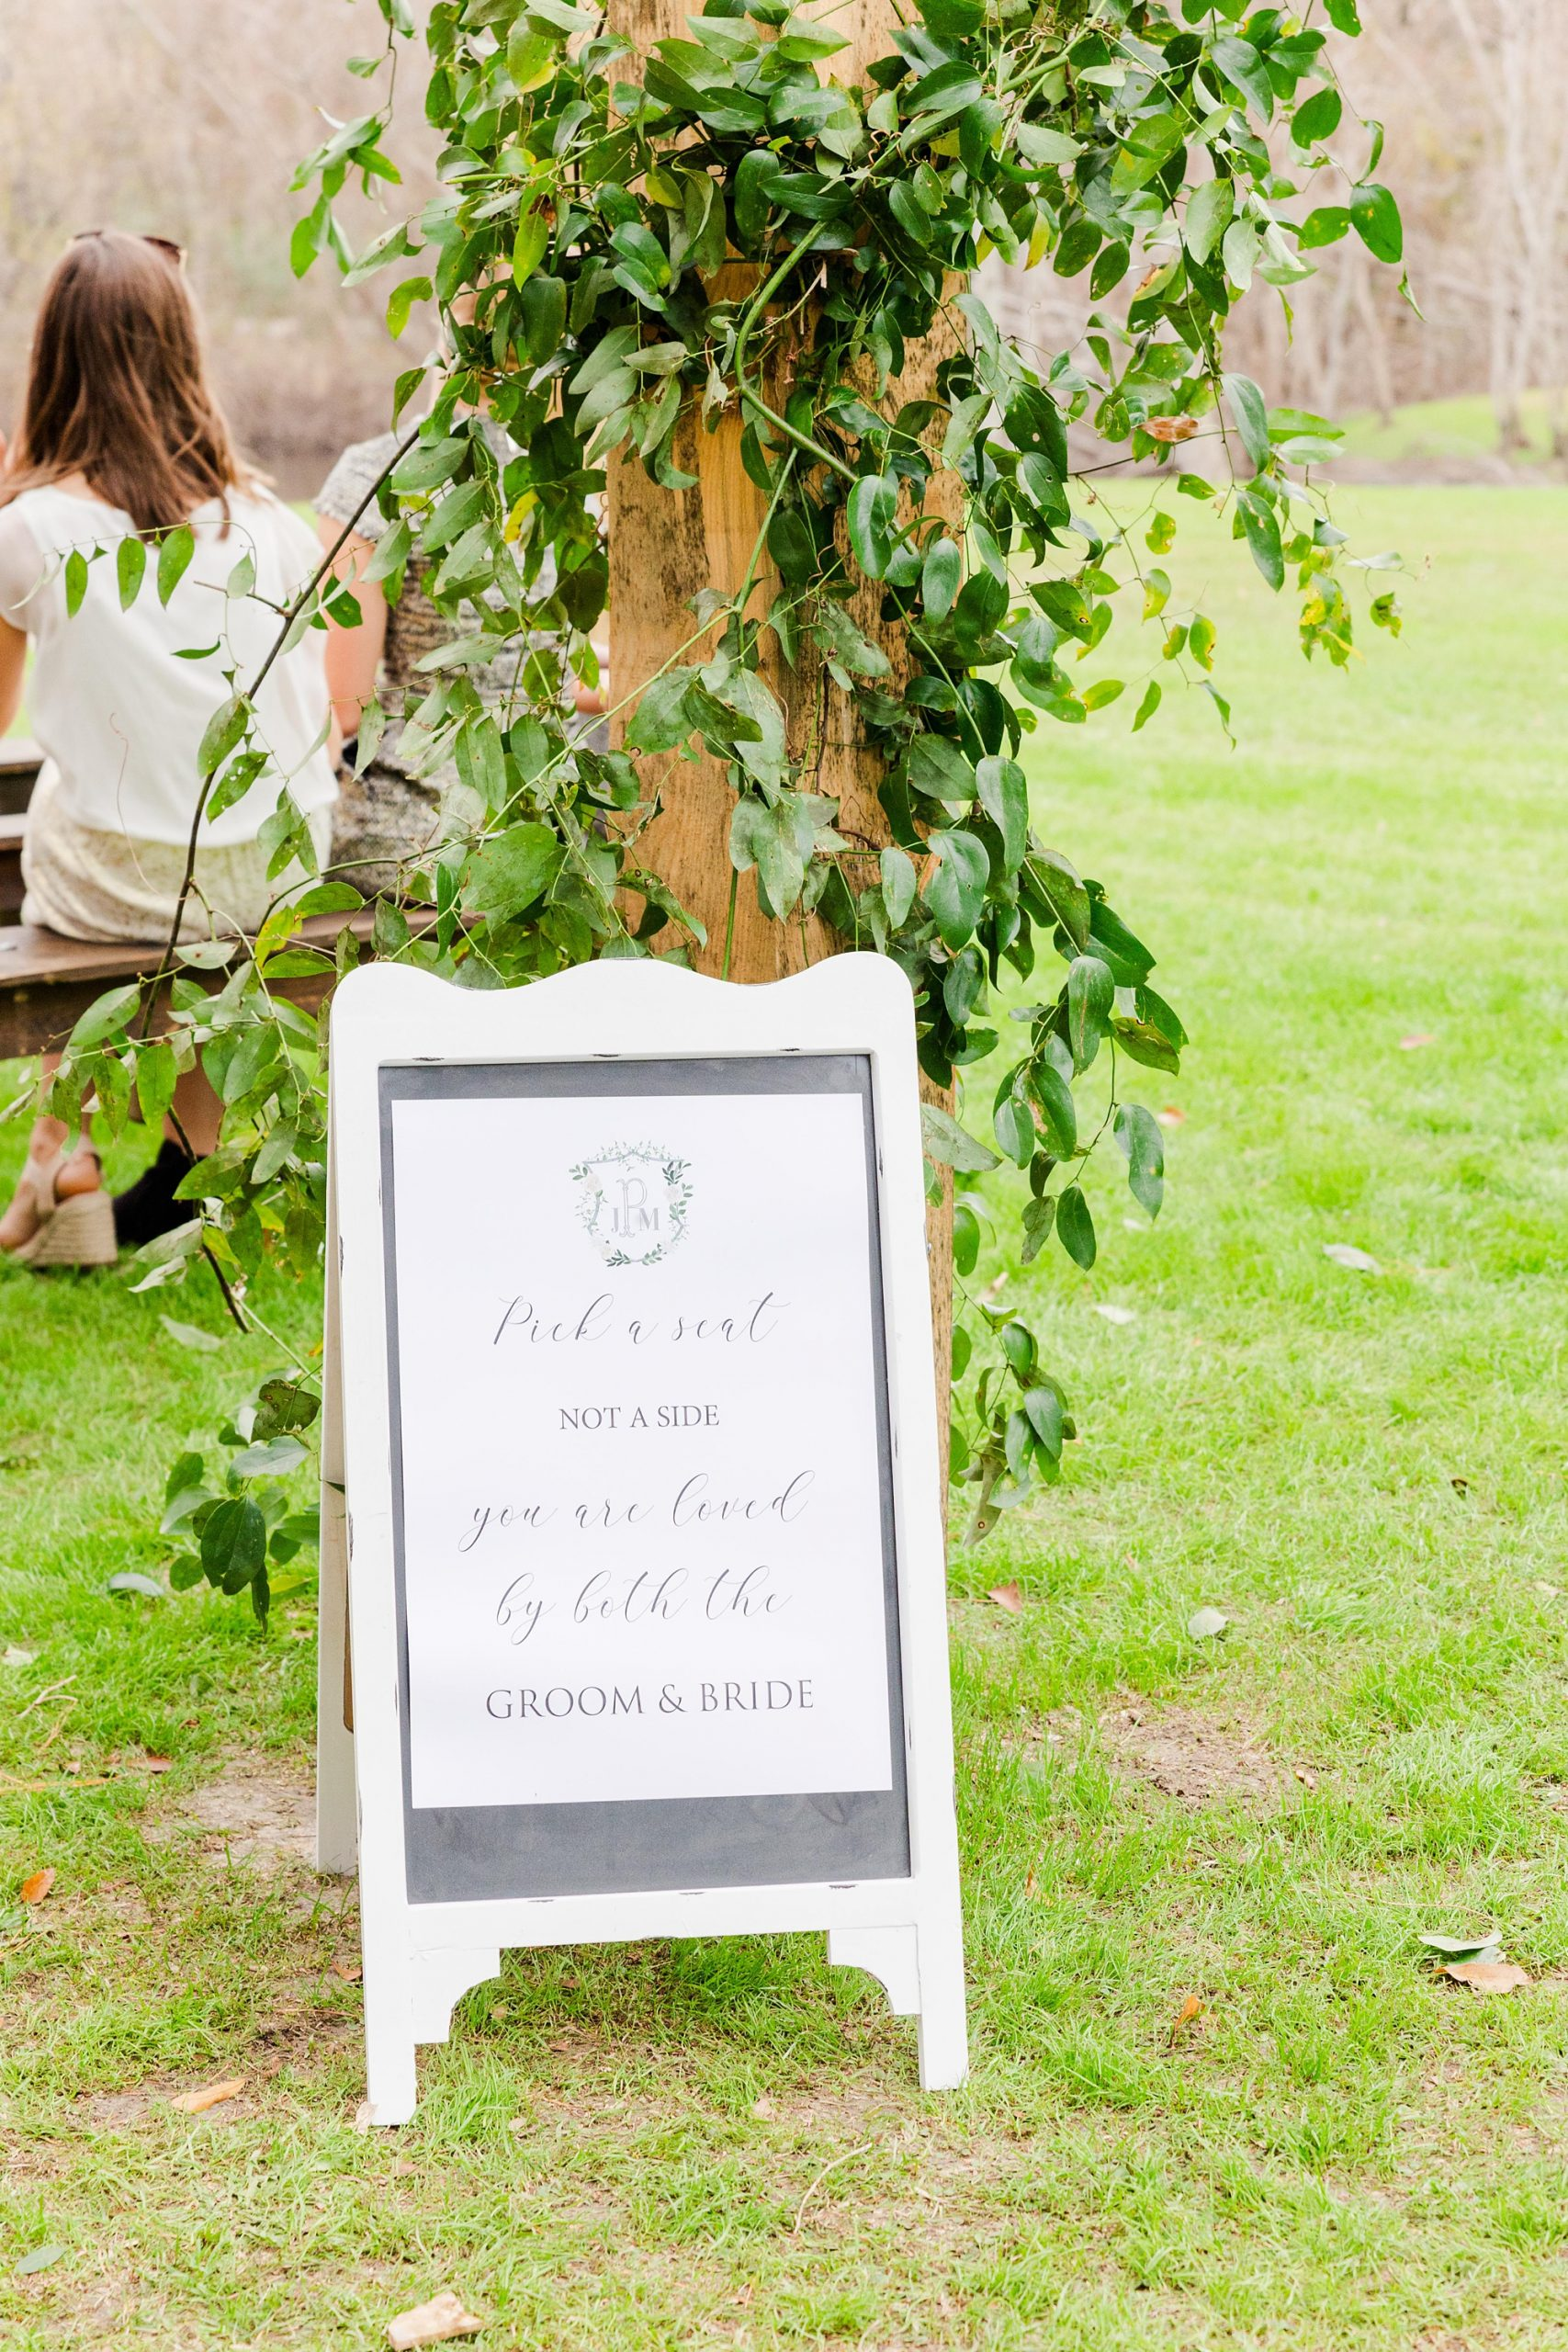 welcome sign for outdoor New Year's Eve wedding ceremony